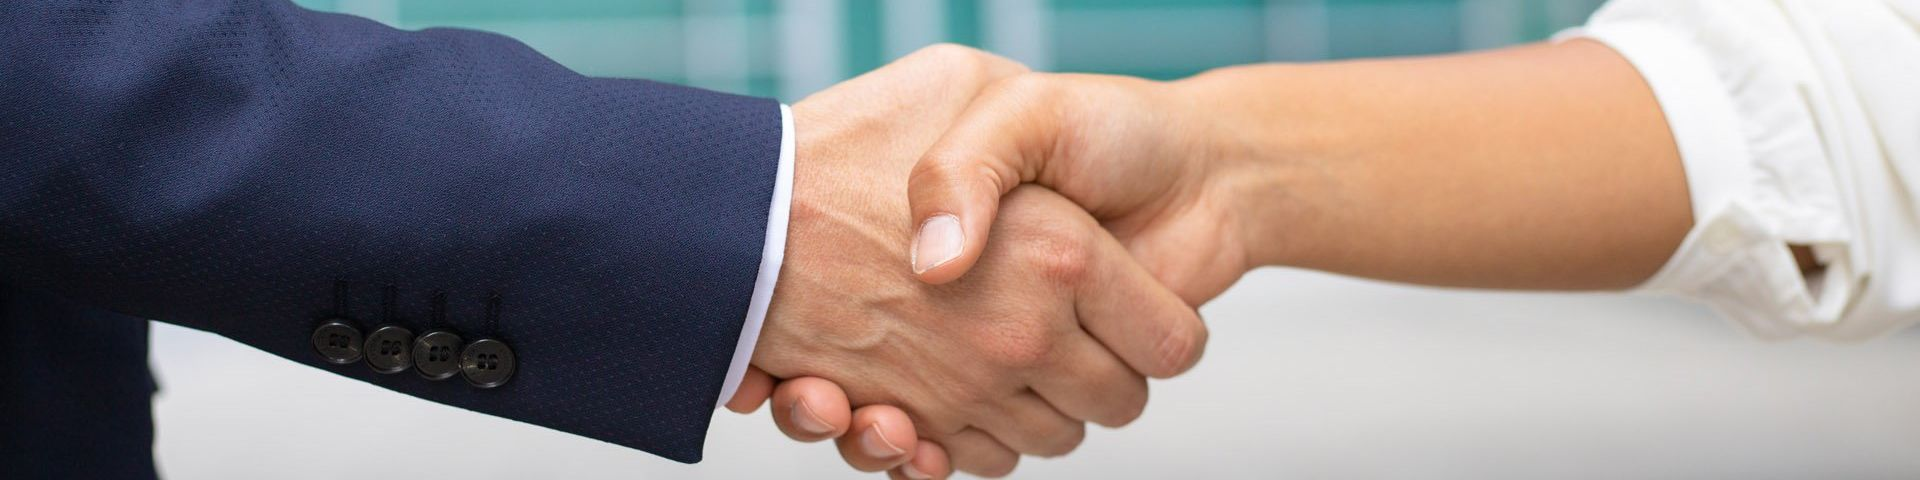 A close up of a handshake between someone wearing a blue suit and a white shirt.